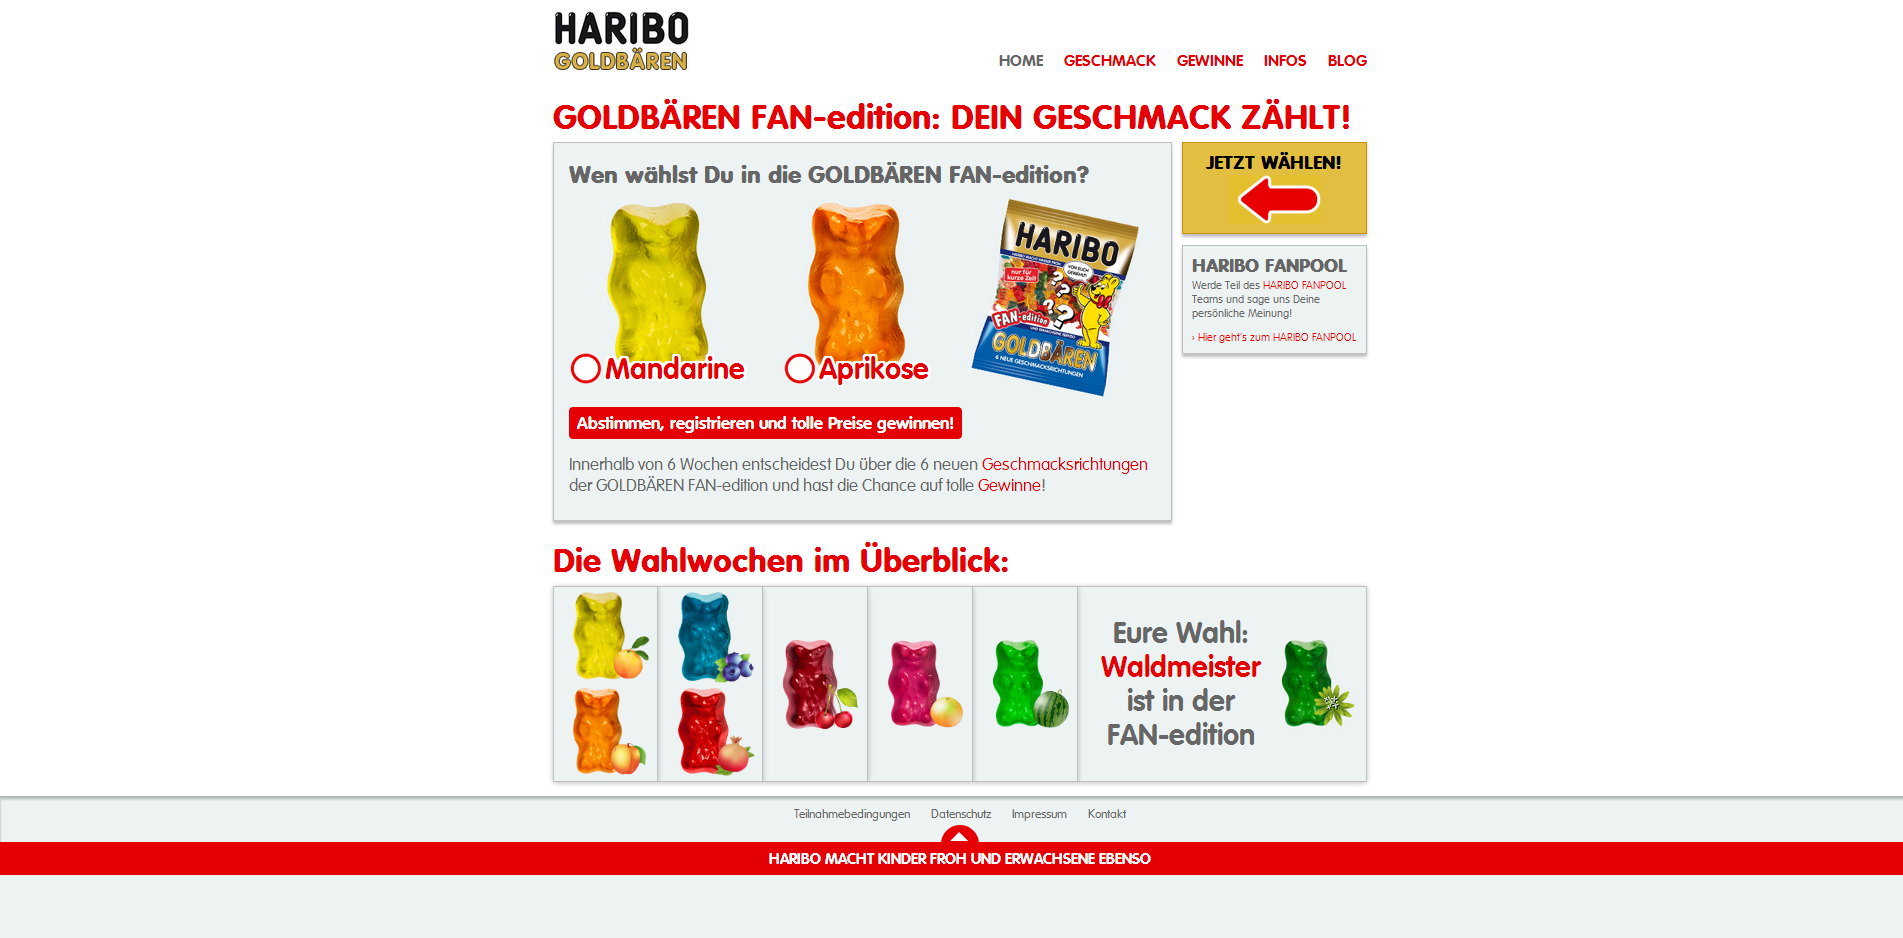 Haribo Goldbären Fanedition Aktion 2014